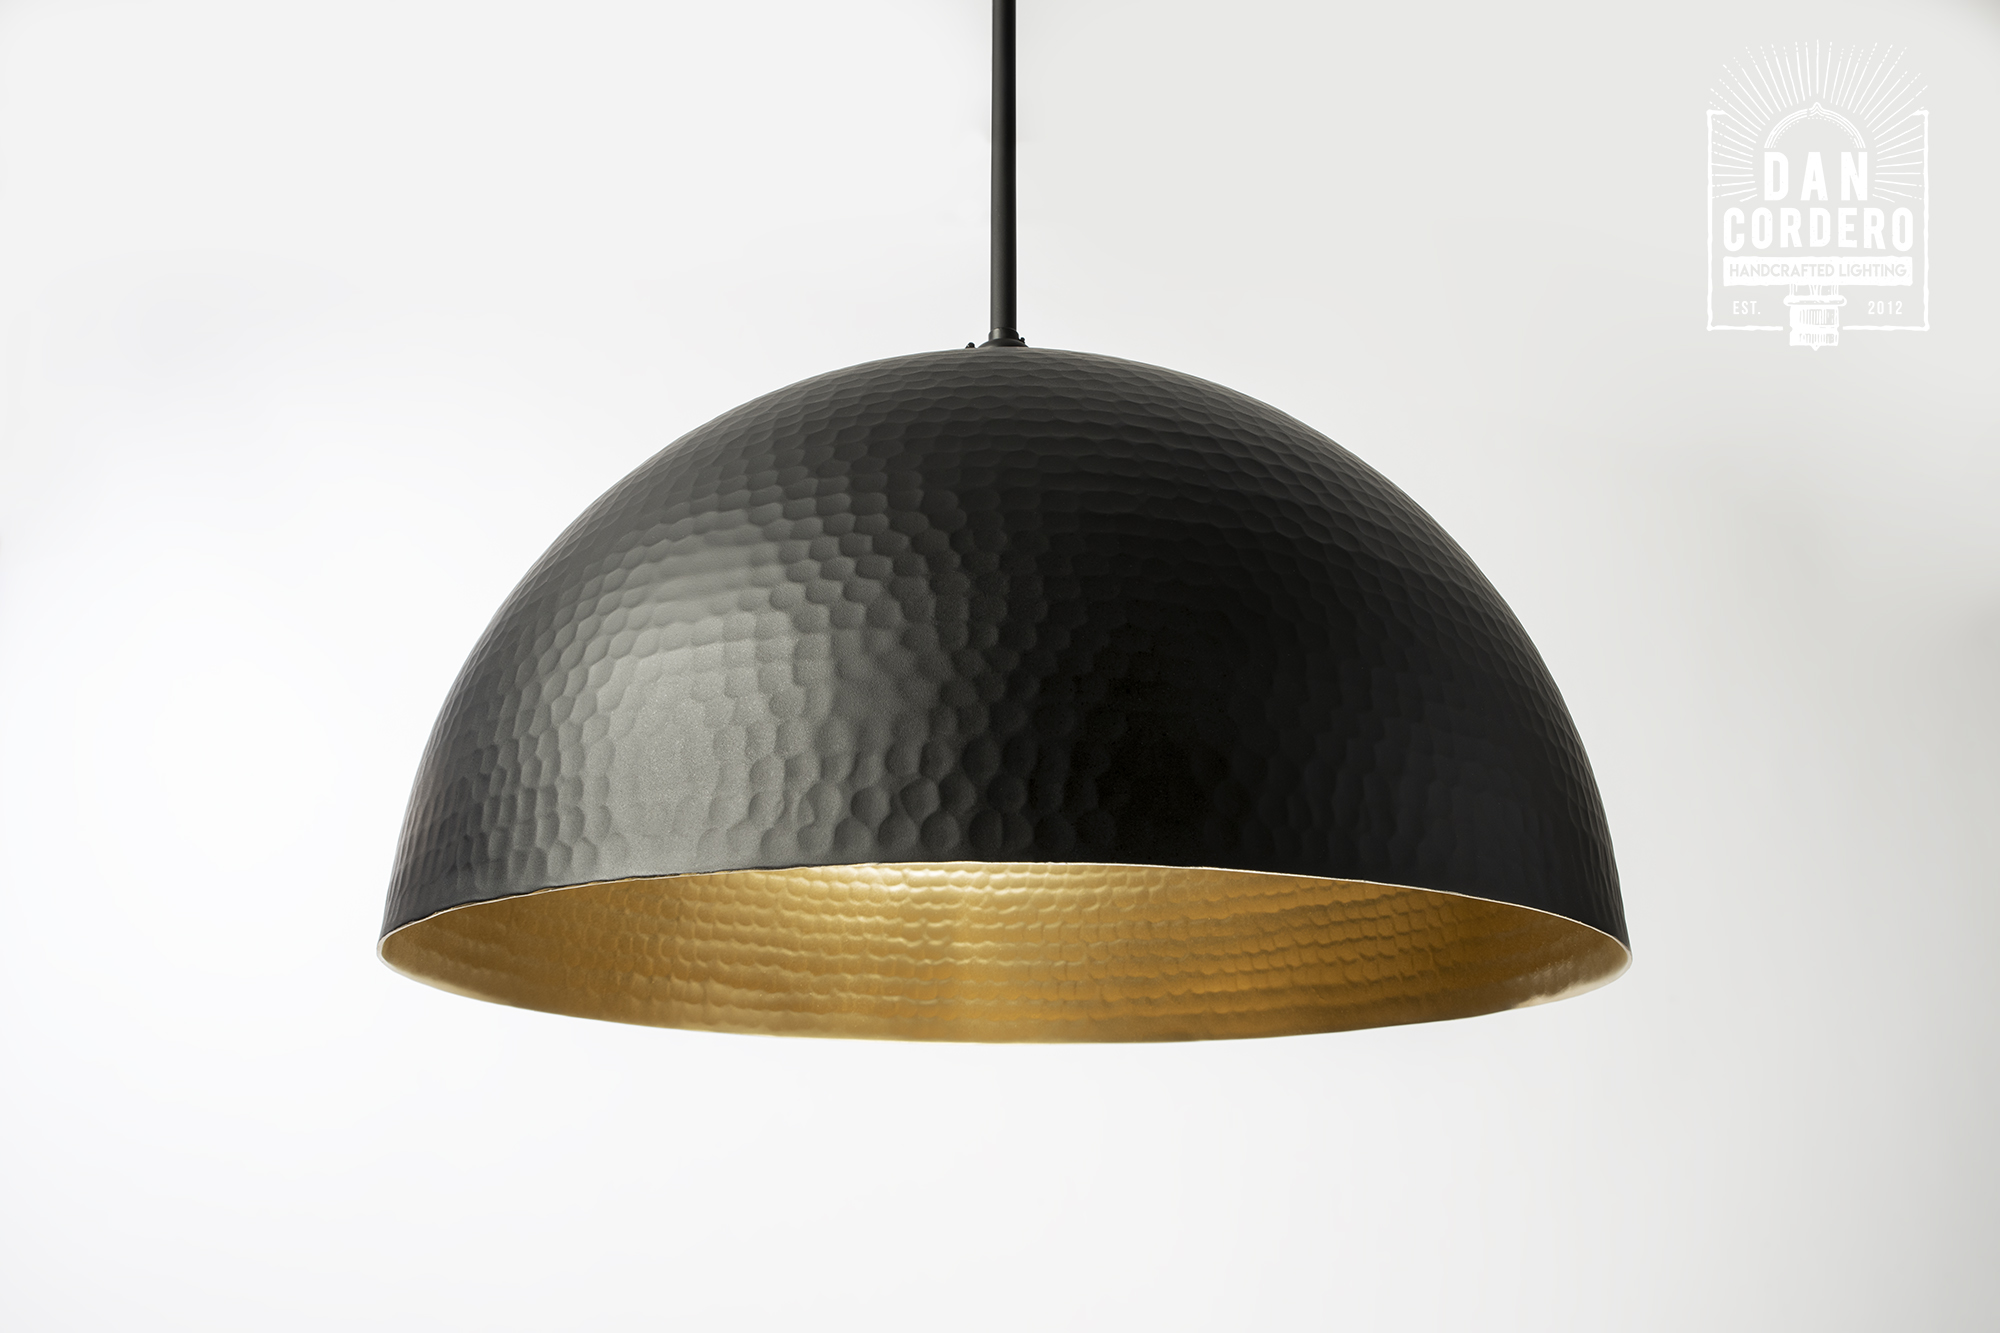 Hammered Flat Black Dome Pendant Light Fixture